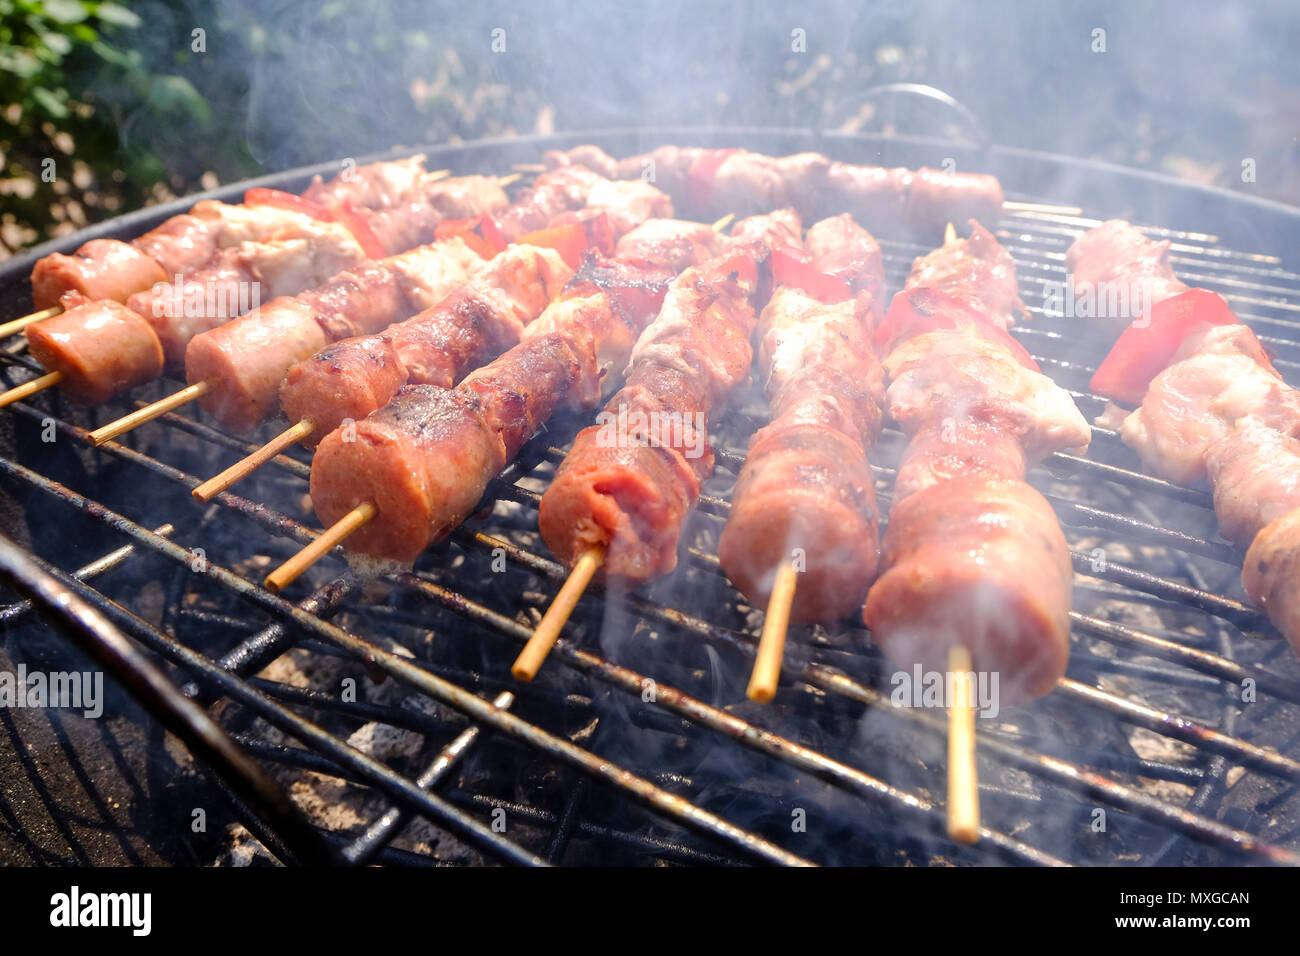 A sunny  day in the garden, starting the fire in the grill and then grilling meat skewers with friends - Stock Image